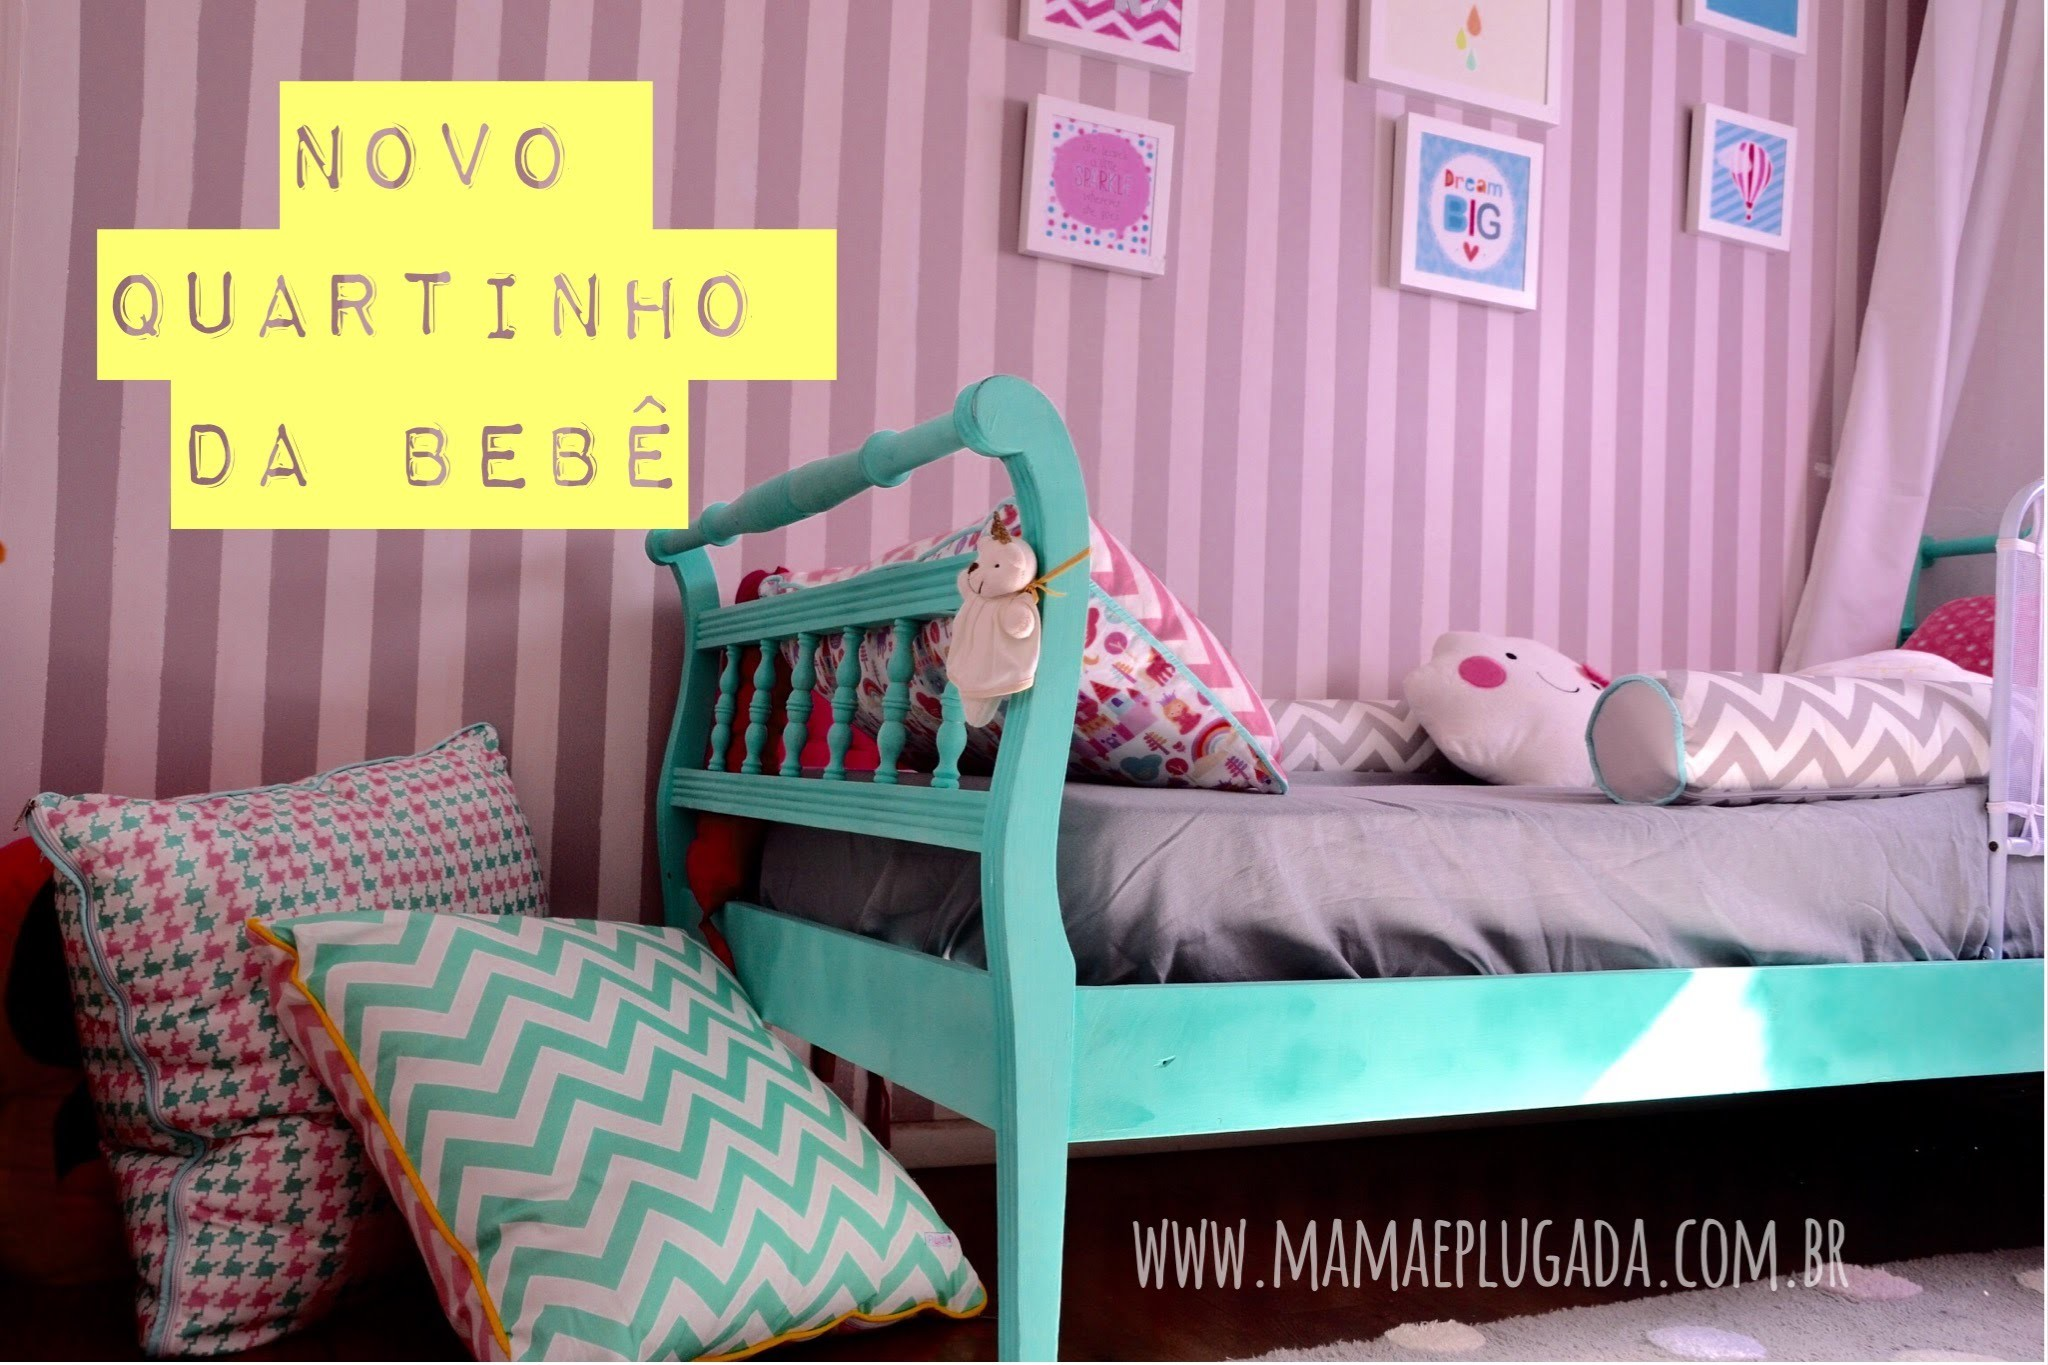 Decor Quarto Bebê - Children's Room Project